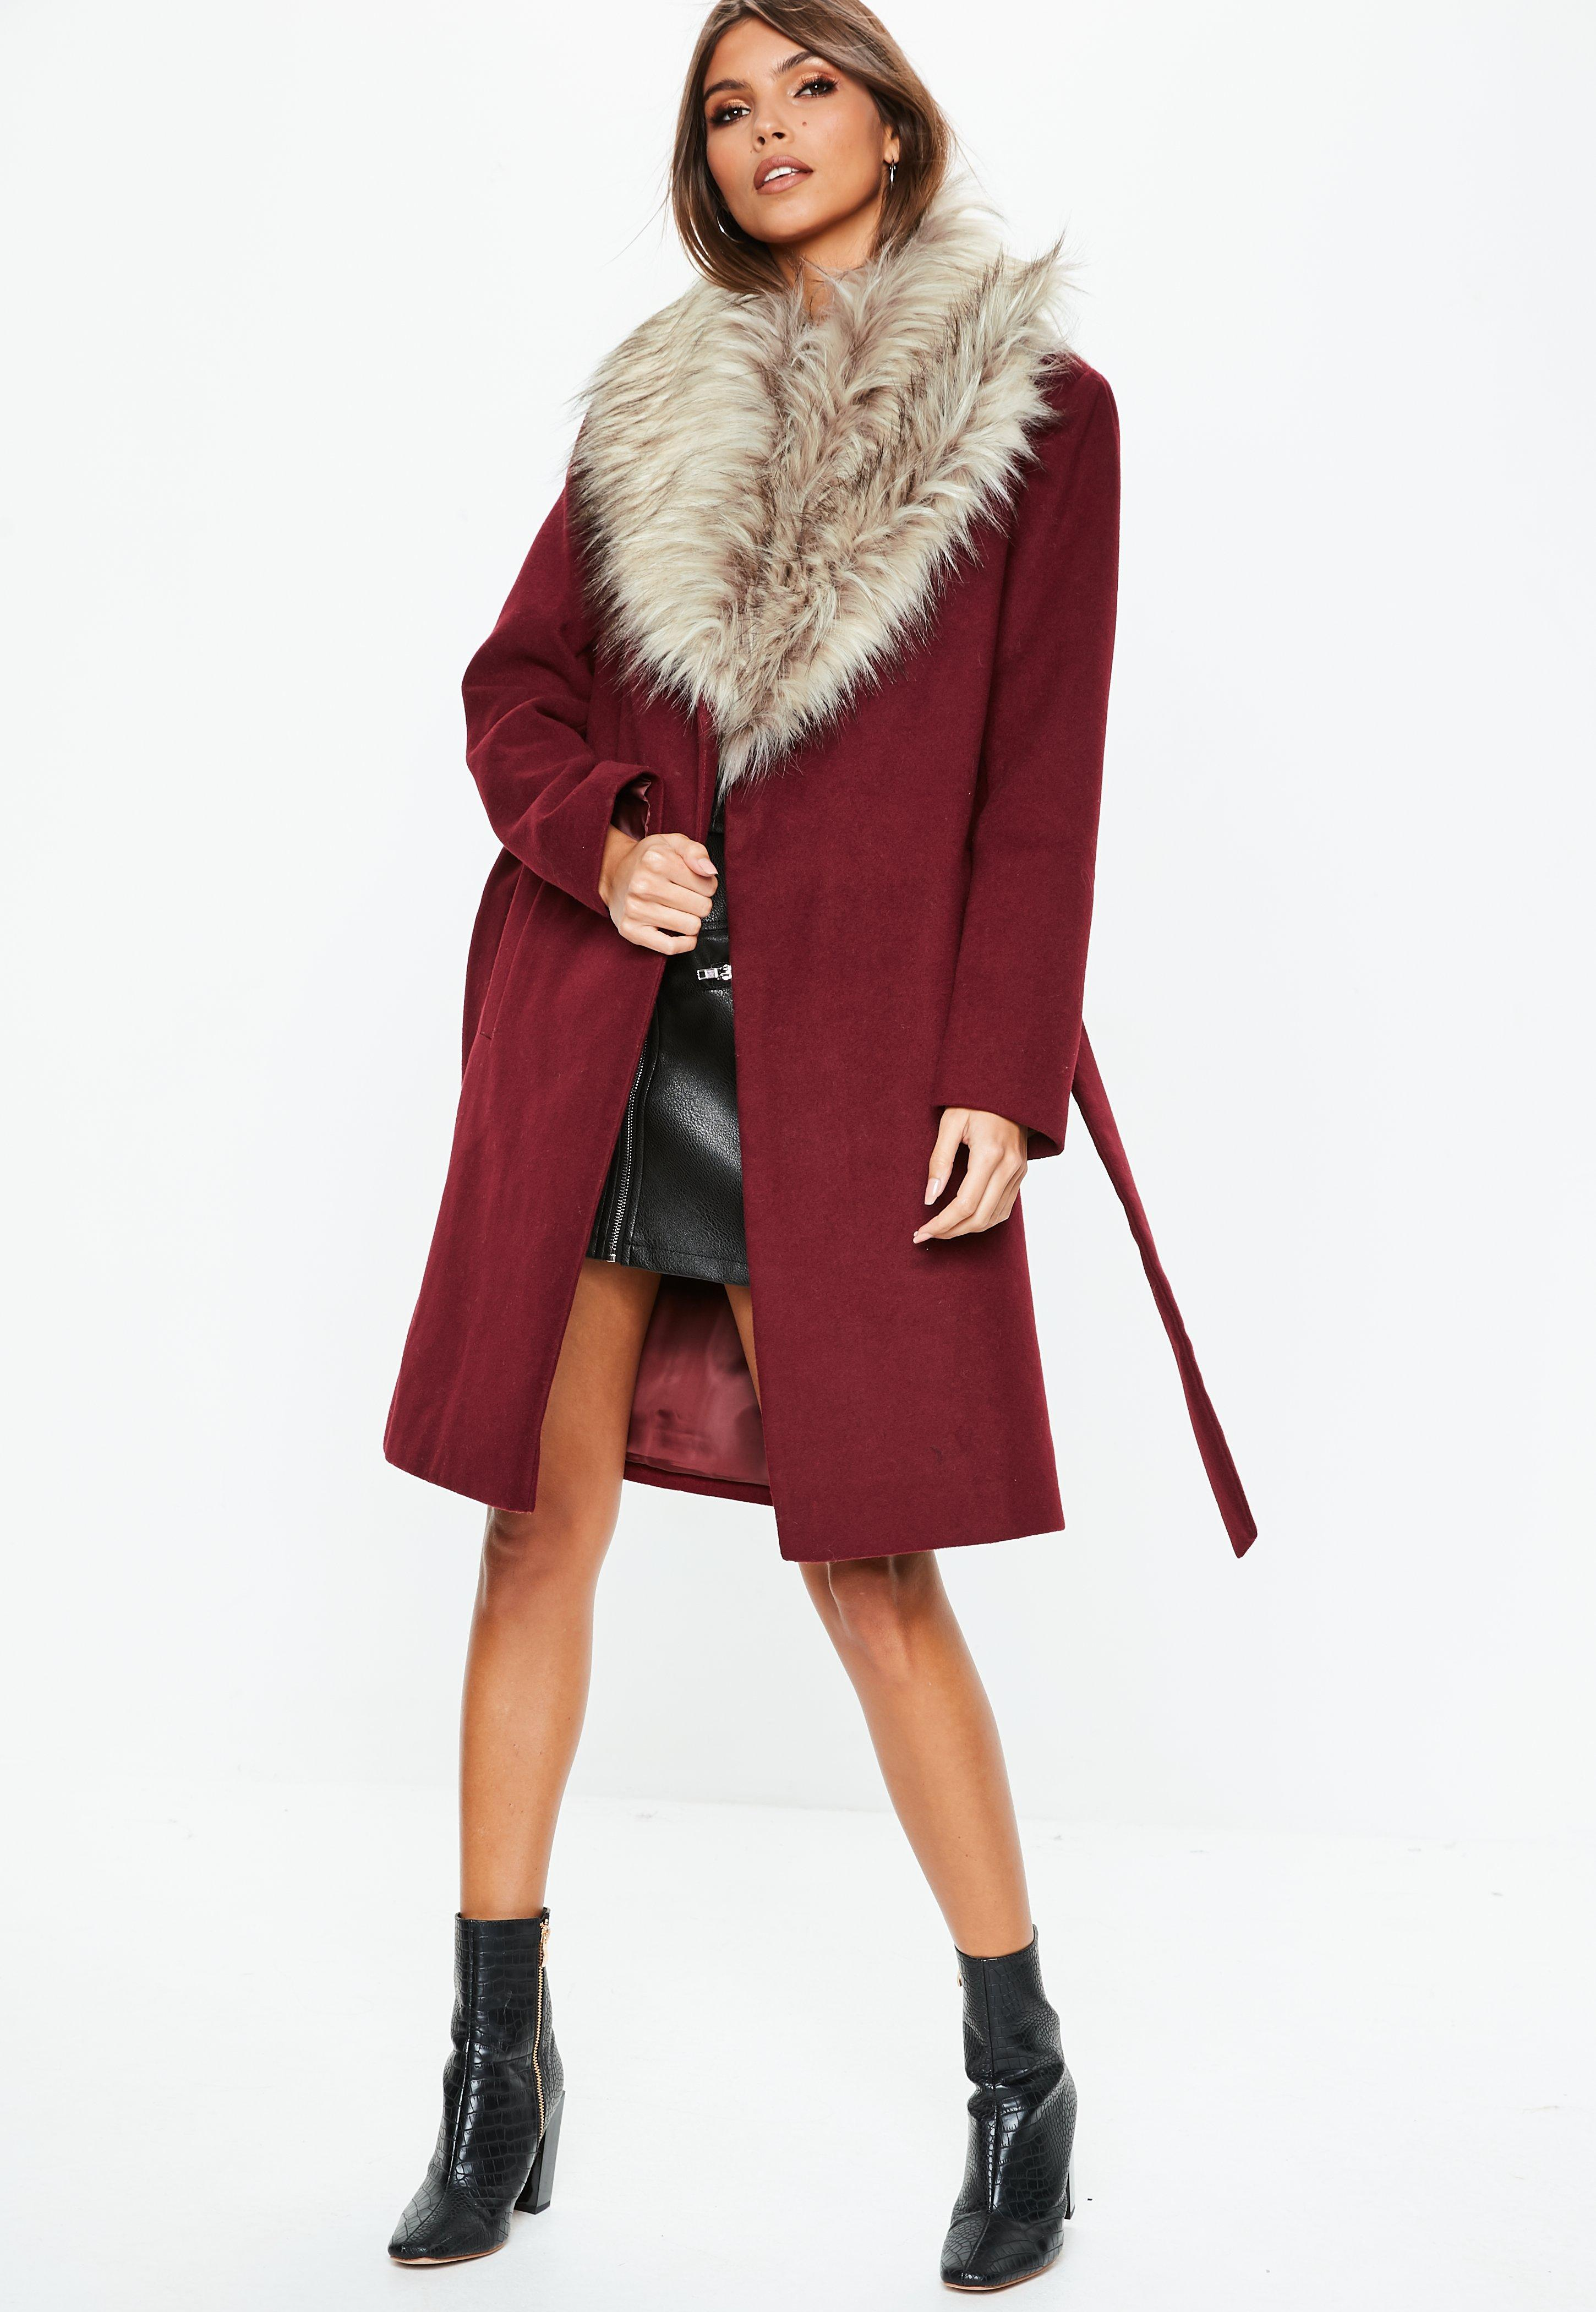 7a2dbf34d337 Missguided Burgundy Faux Fur Collar Coat in Red - Lyst